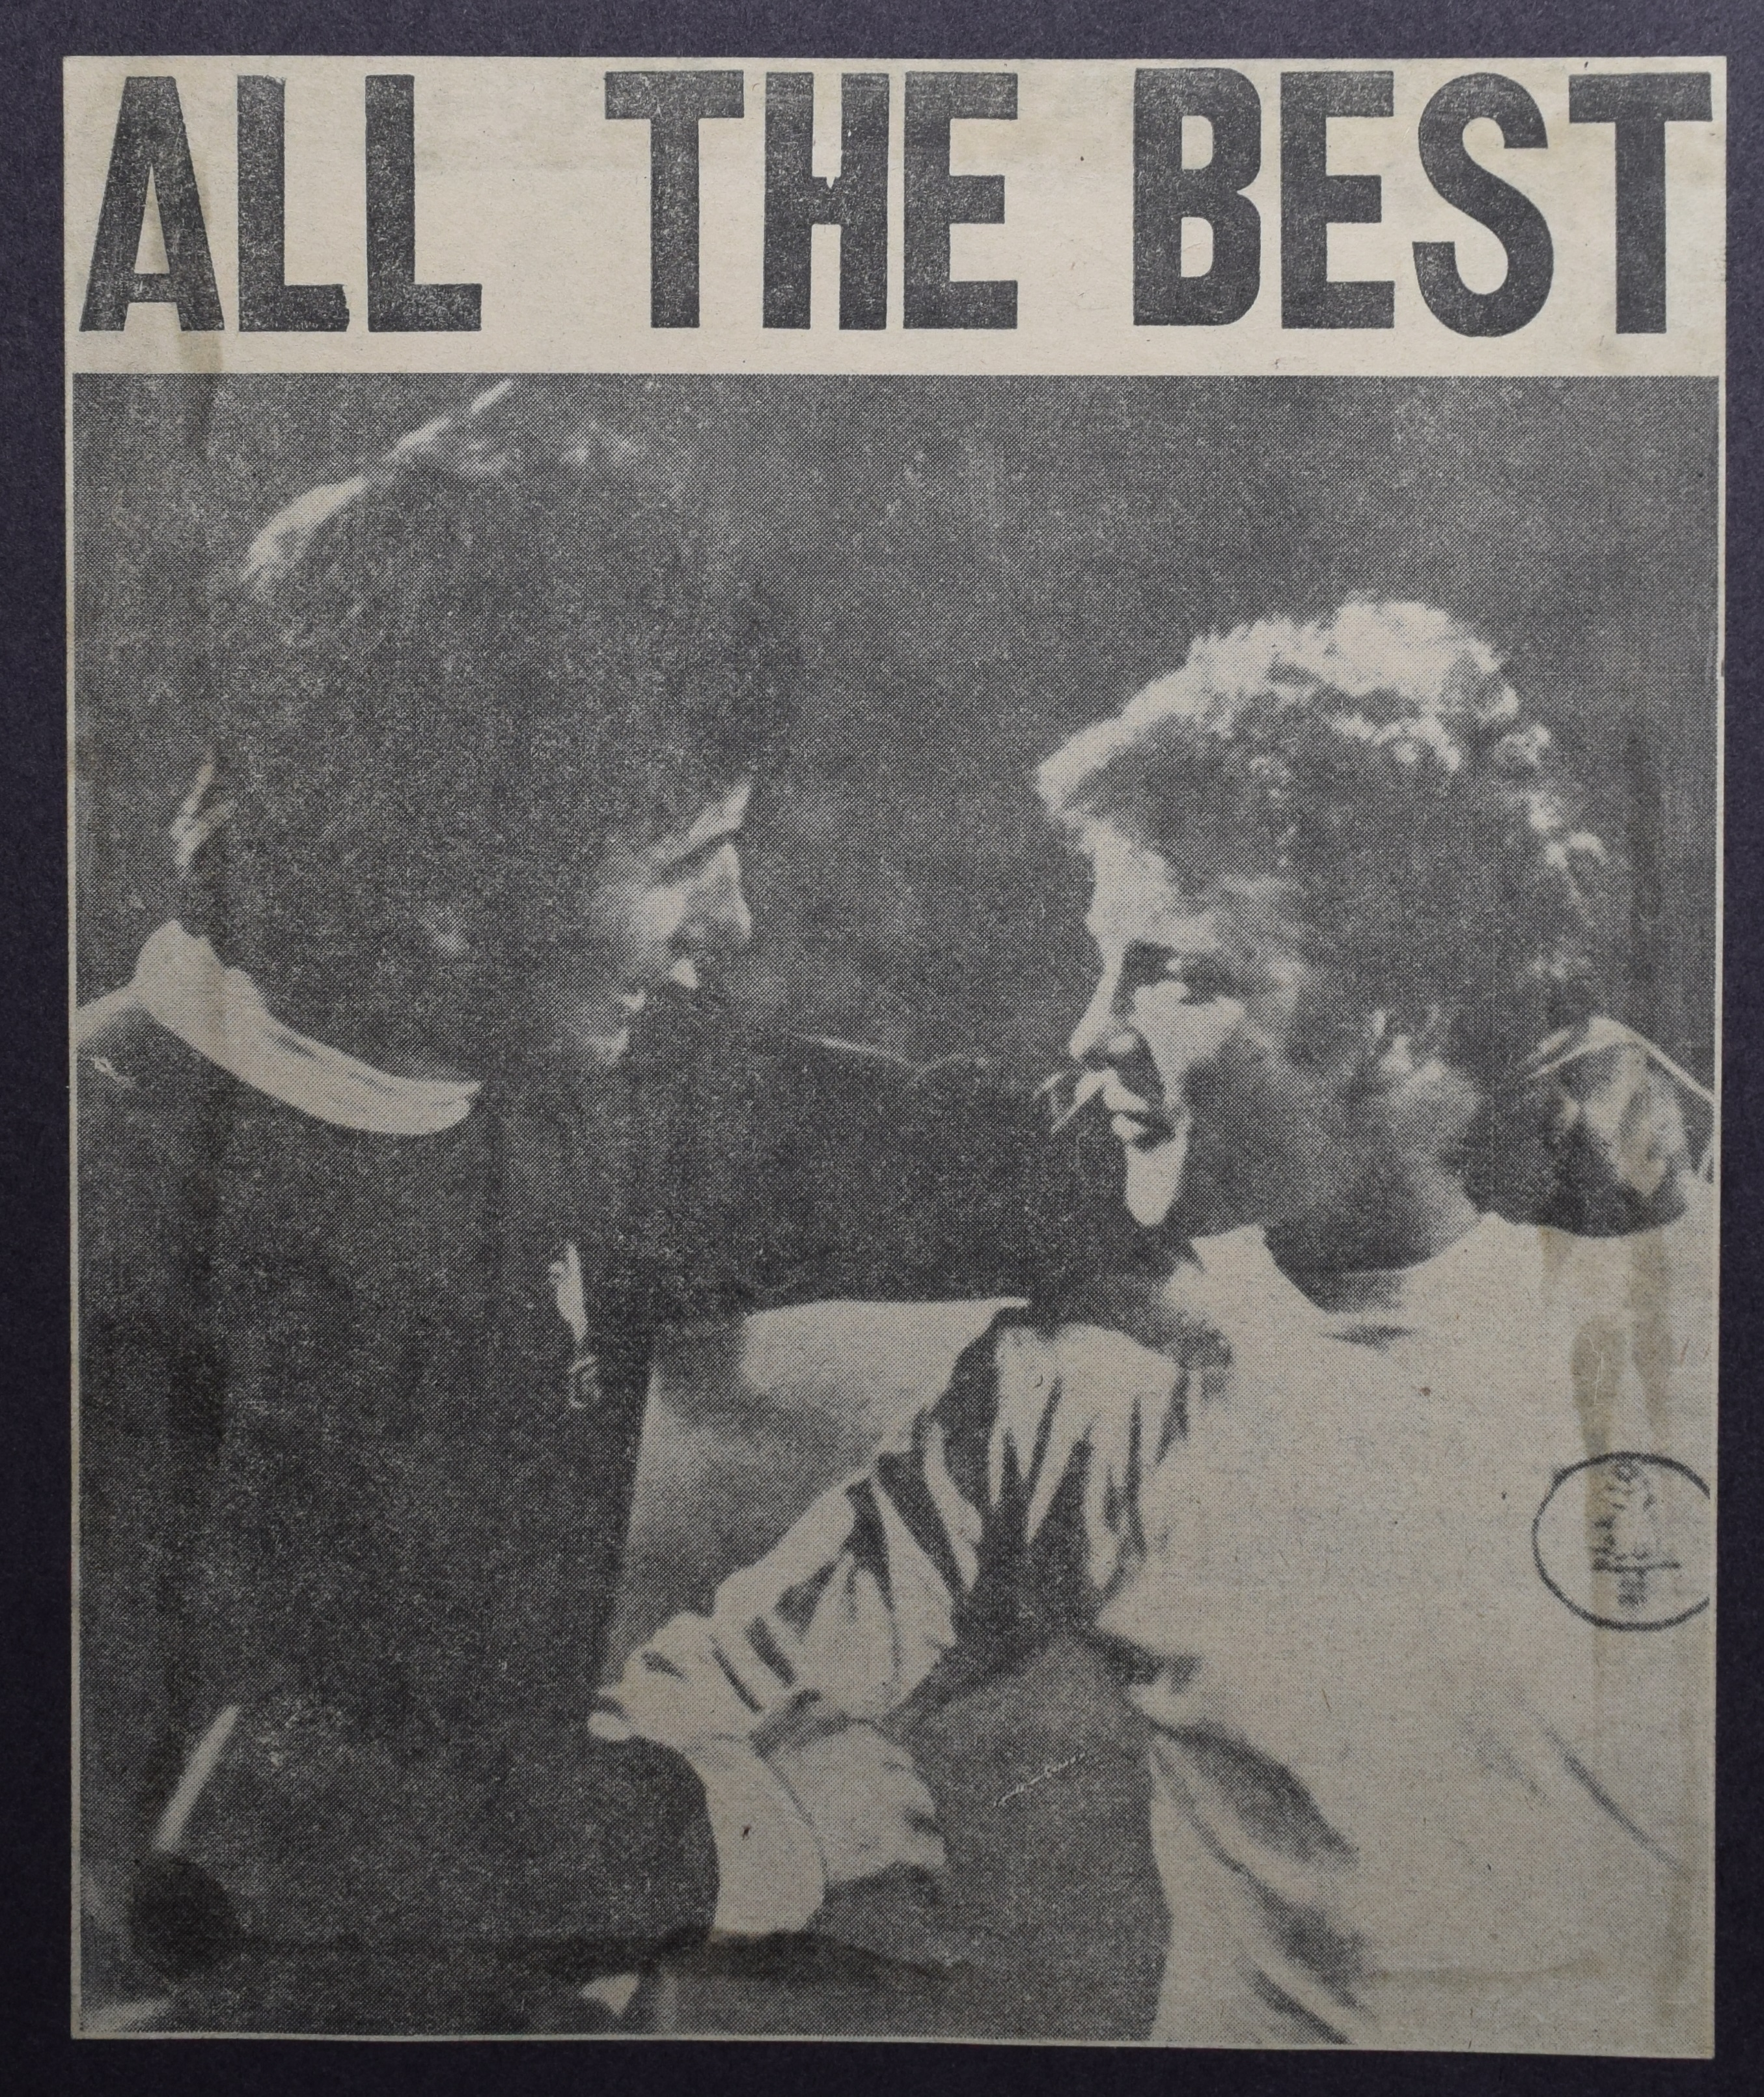 All the best, says Smith to Bremner in Fairs Cup - 28 April 1971